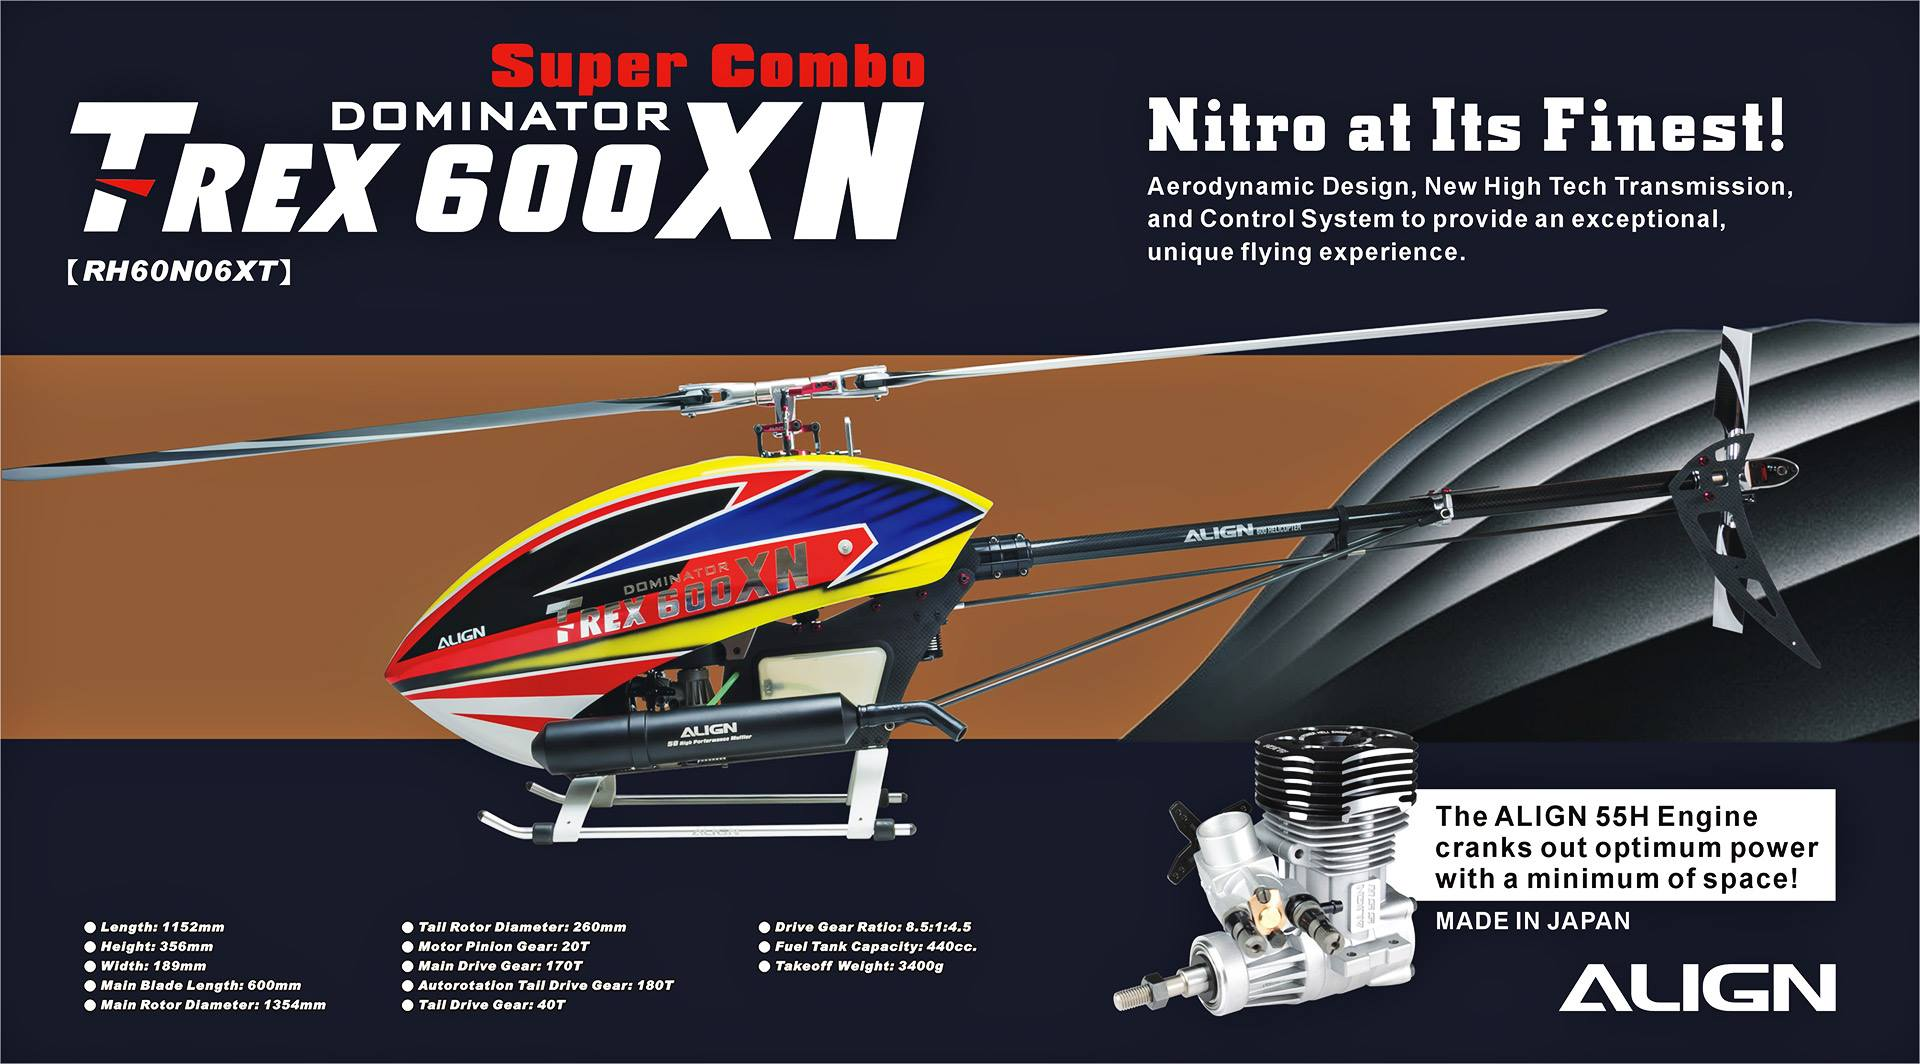 The new T-Rex 600 XN Dominator